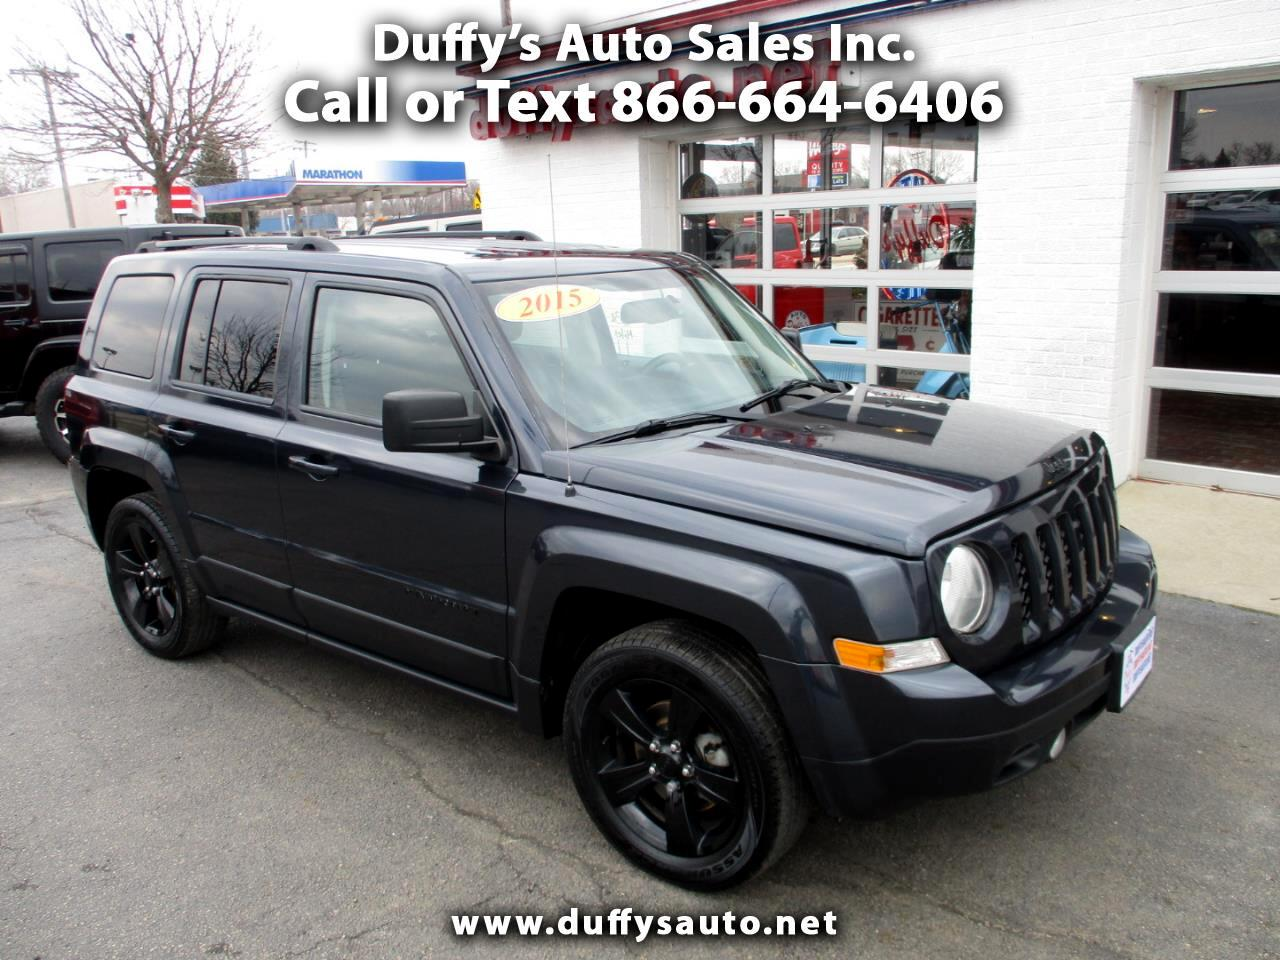 2015 Jeep Patriot FWD 4dr Altitude Edition